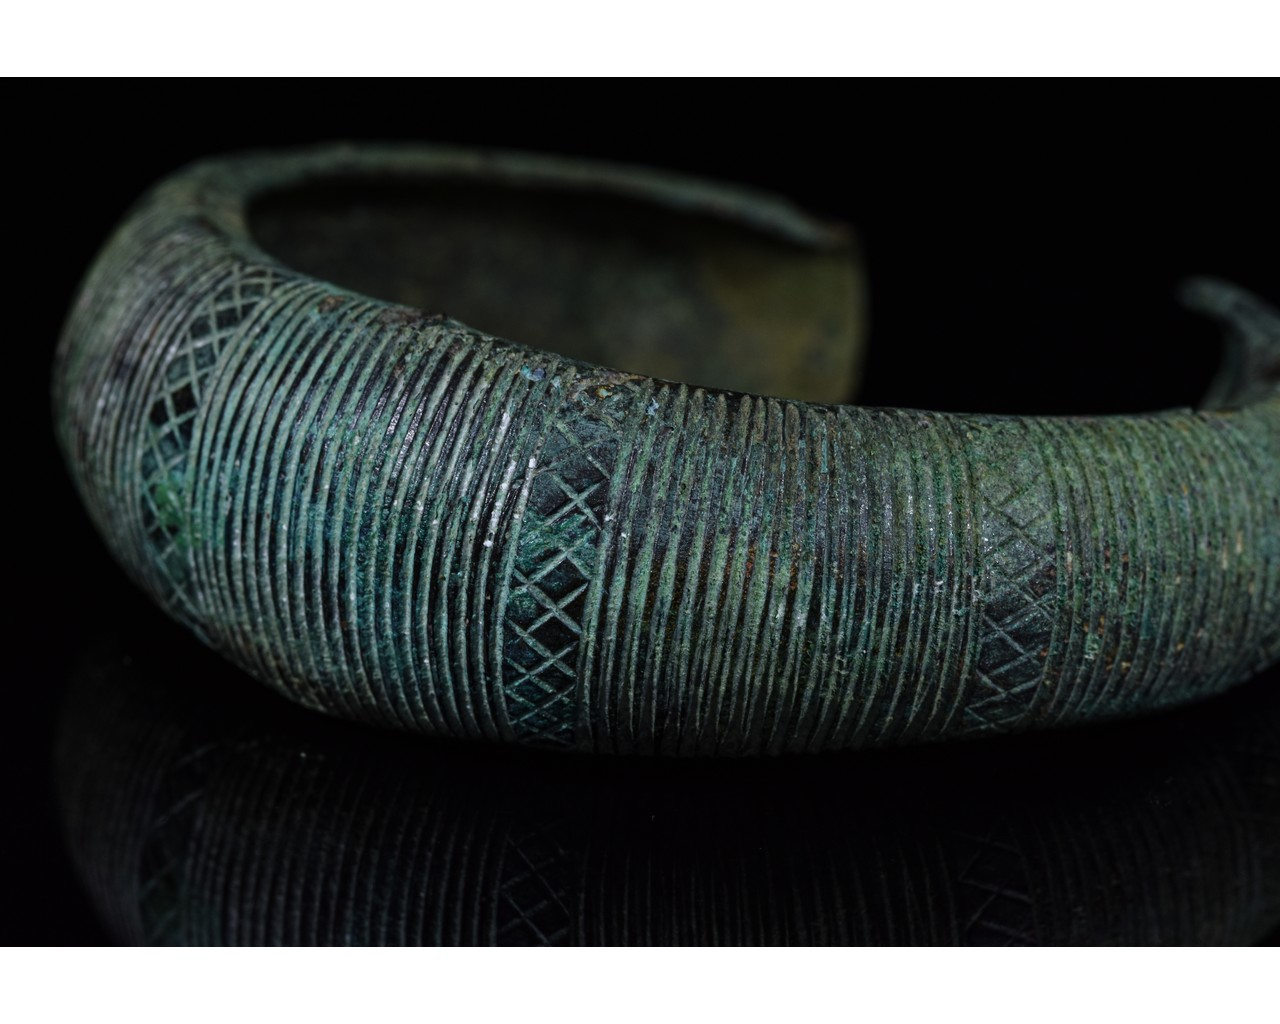 Lot 51 - VIKING BRONZE BRACELET - SUPERB PATINA & DECORATION